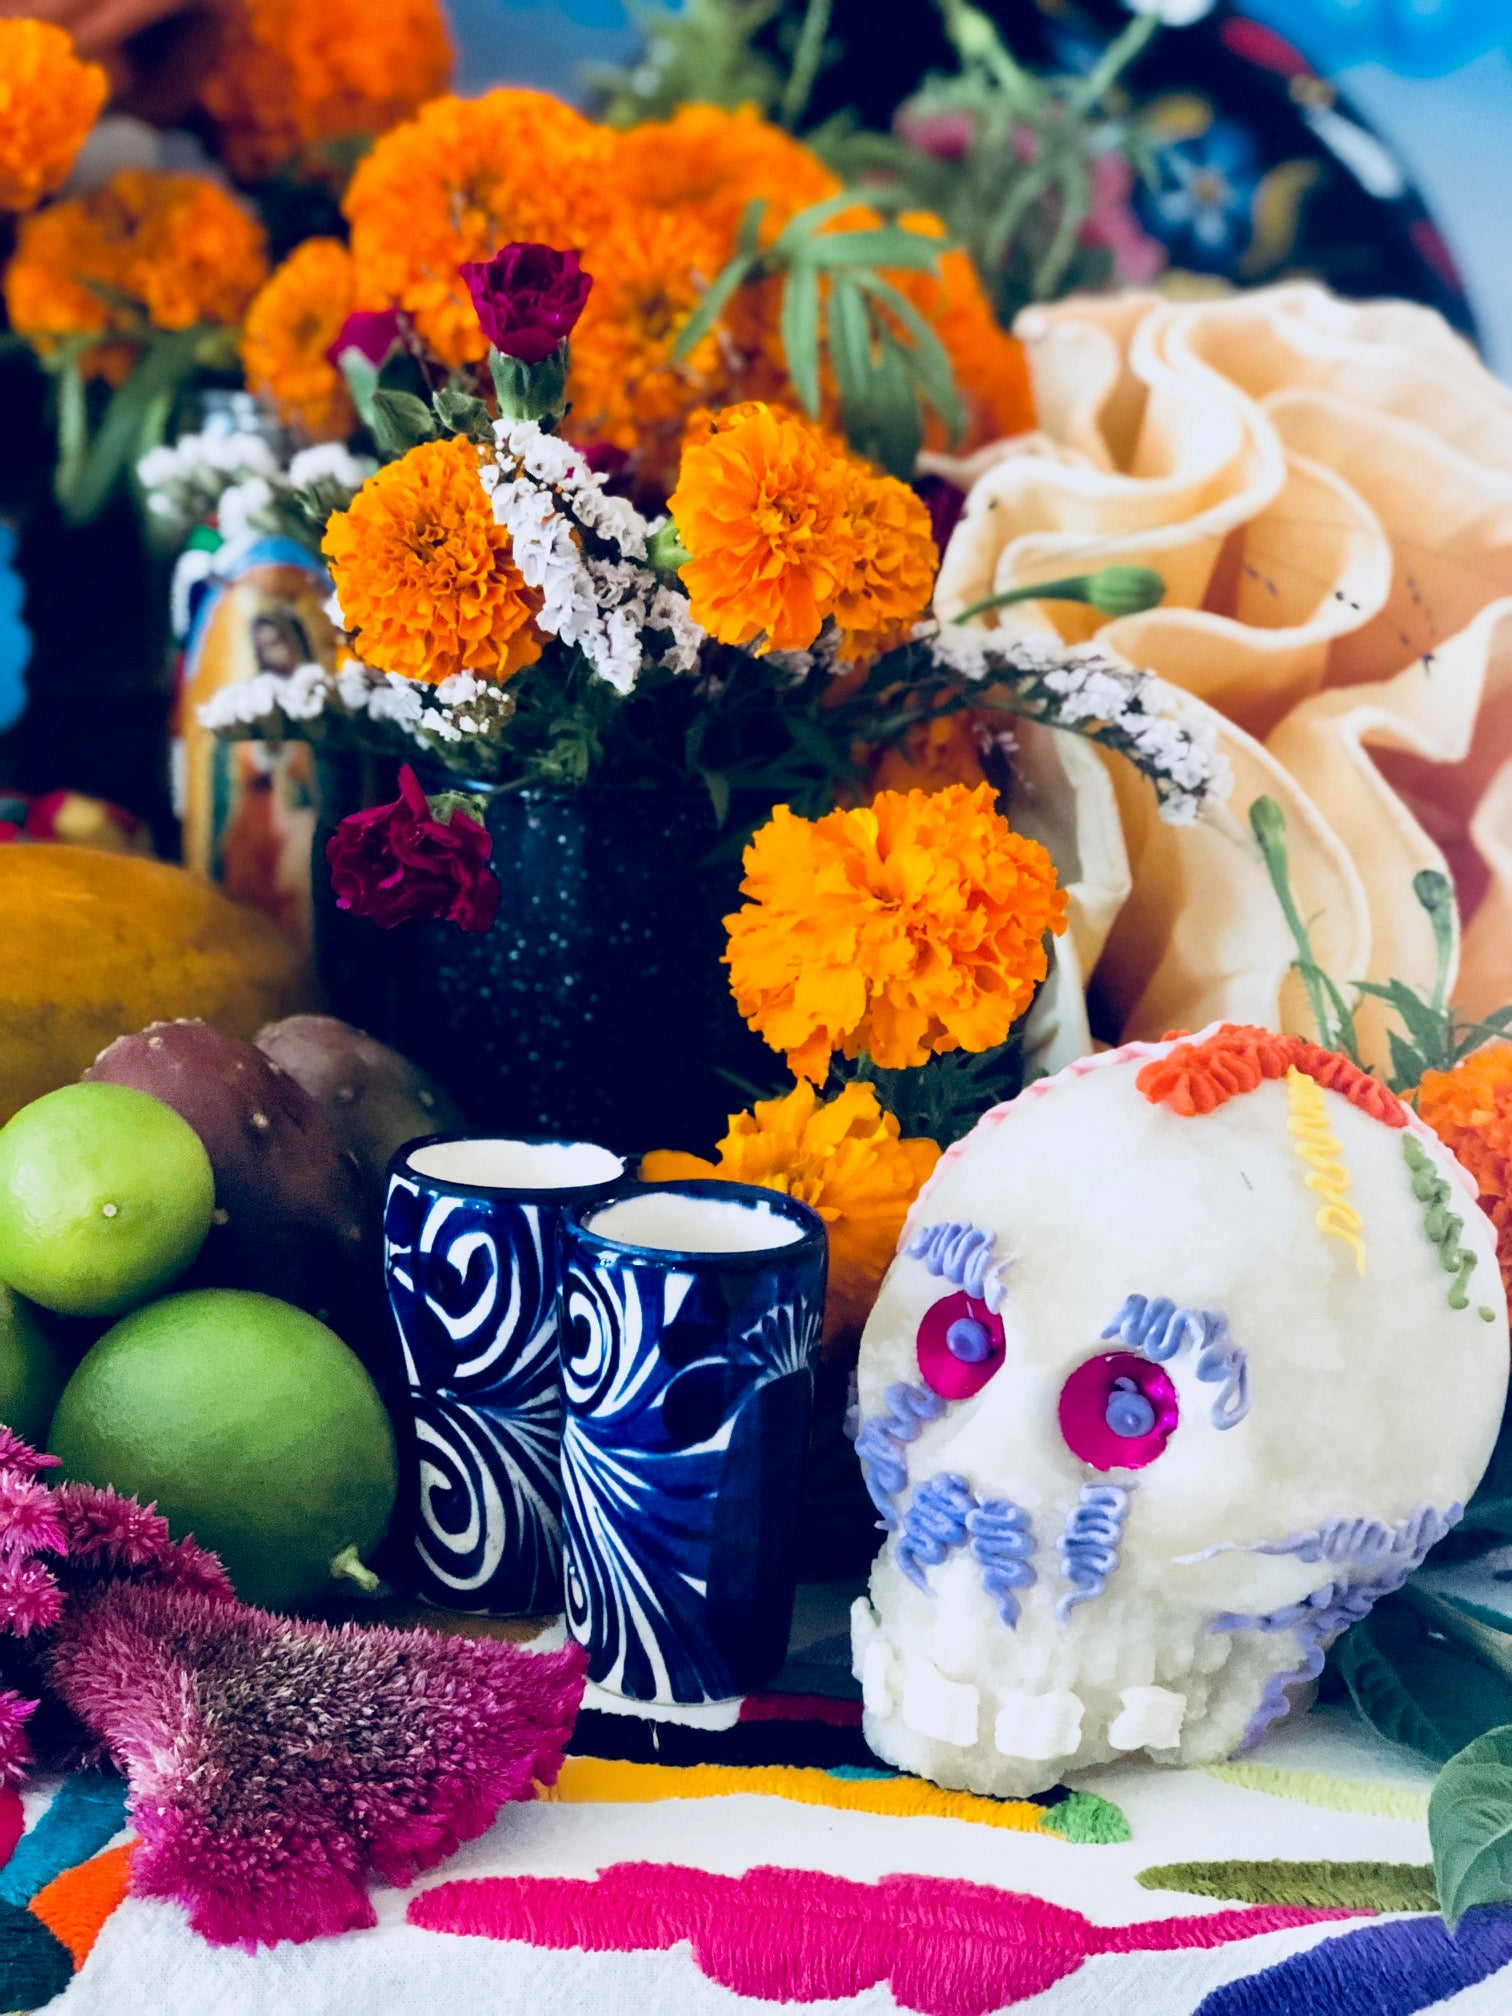 How To Make A Day Of The Dead Altar Artelexia